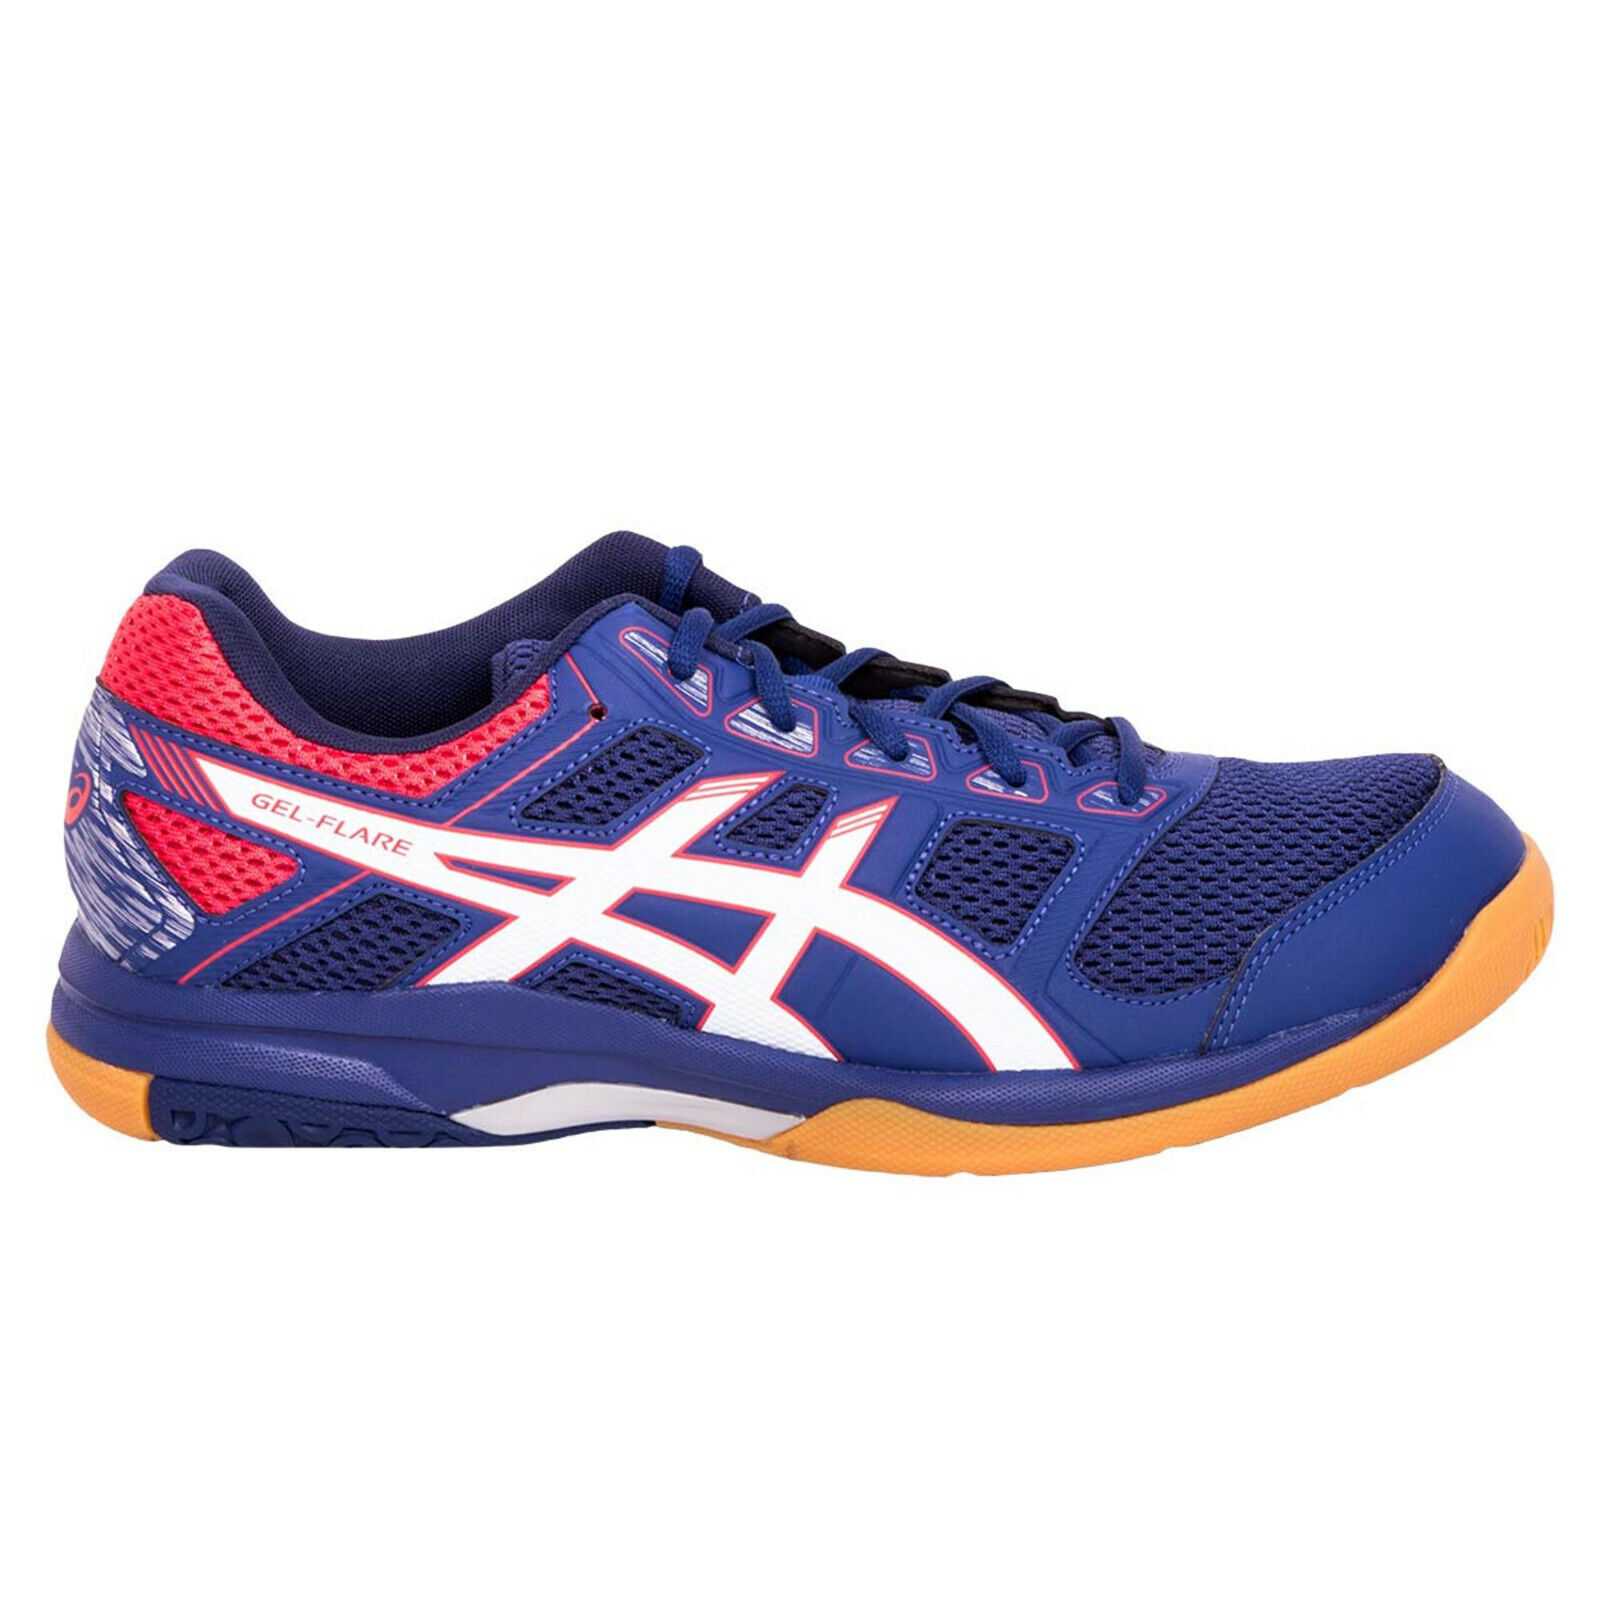 ASICS  Gel-Flare 6 Squash shoes RRP .99